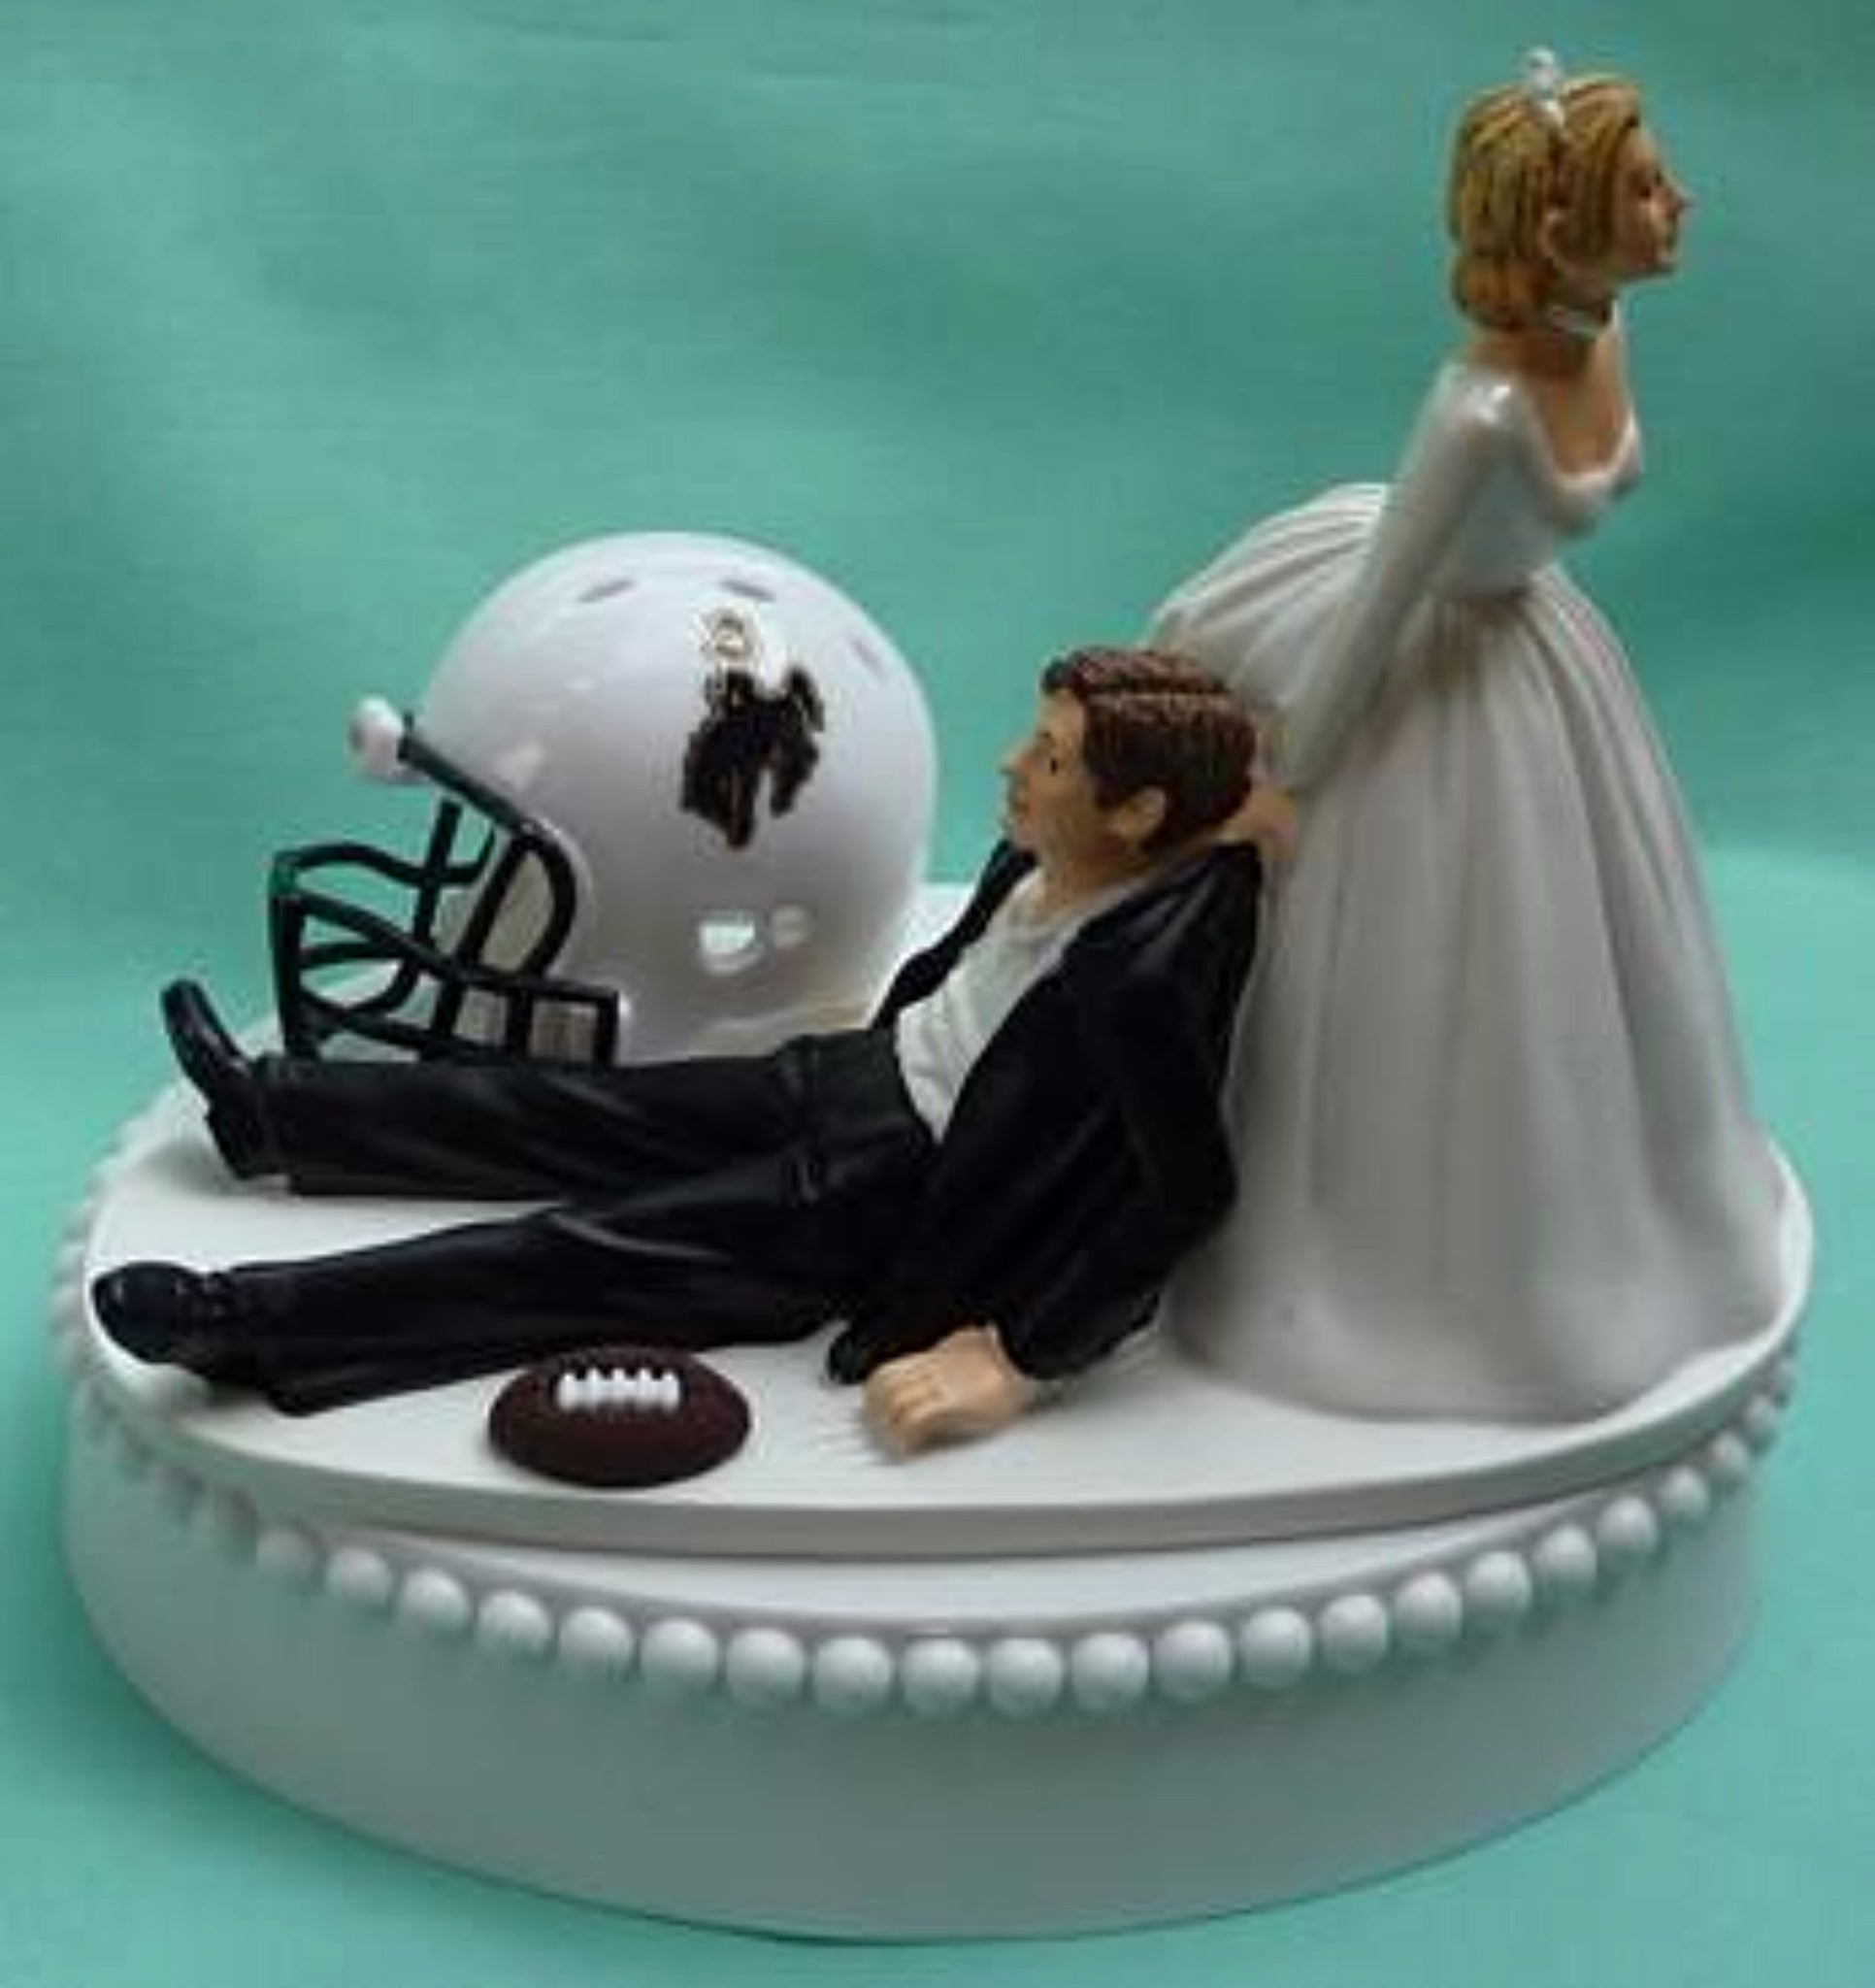 University of Wyoming wedding cake topper UW Cowboys football groom's cake top humorous funny bride dragging groom ball helmet unique reception gift Fun Wedding Things